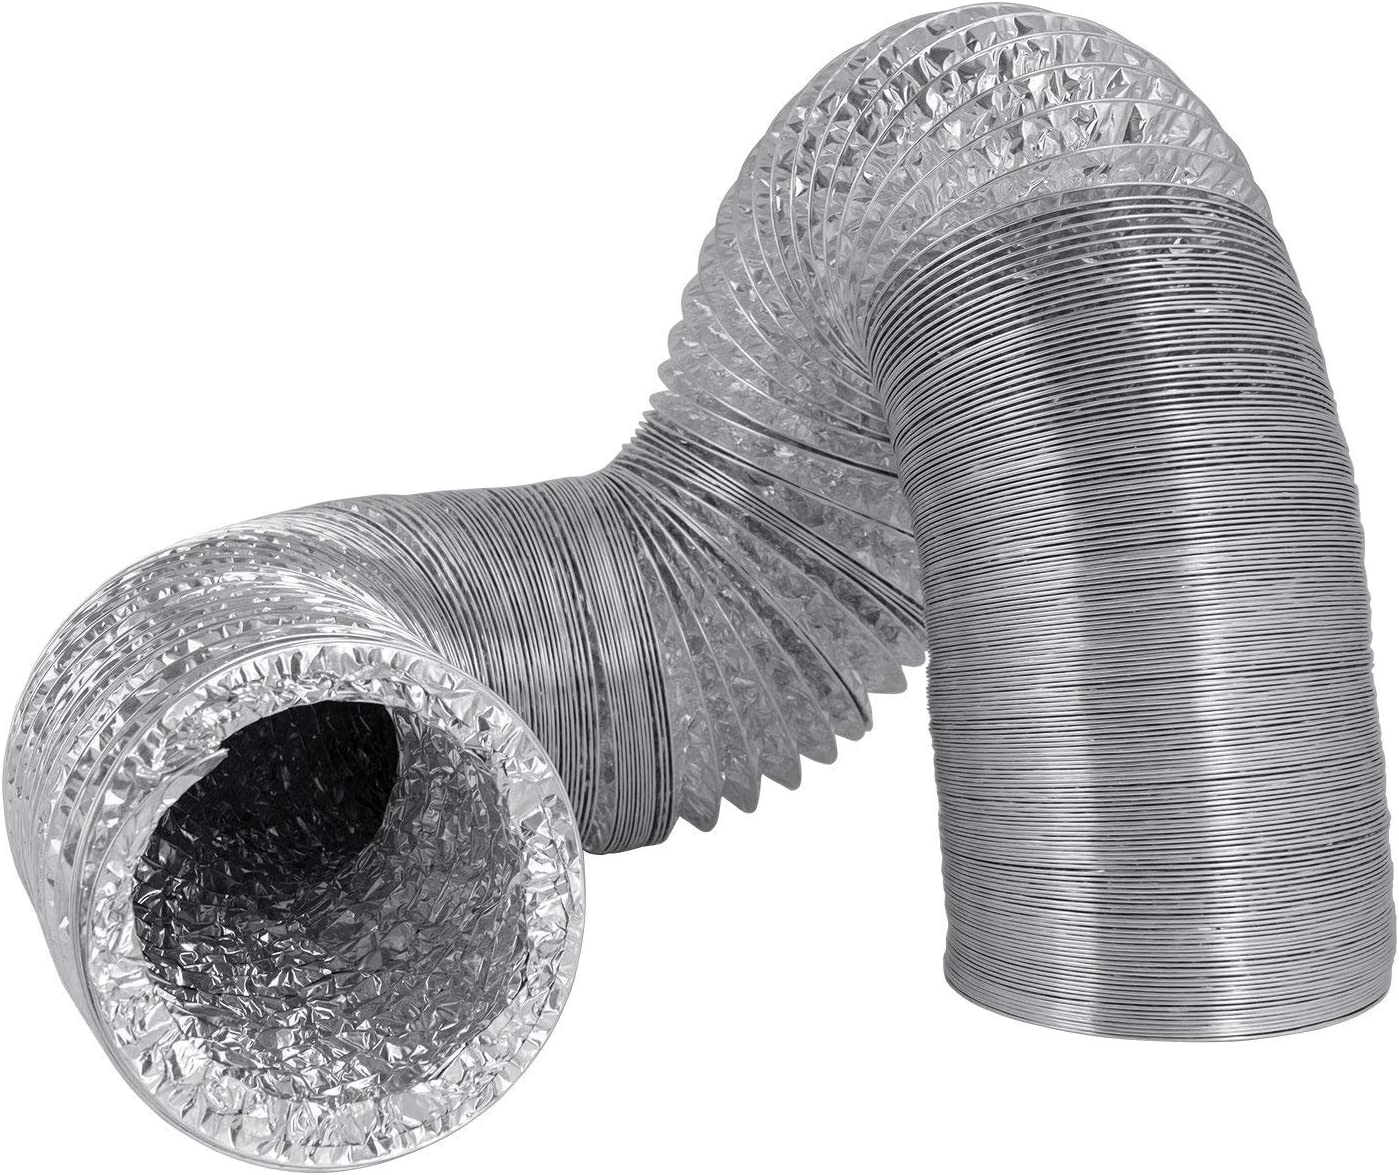 Hose Aluminum HVAC Ducting 32 Feet for Grow Room Tent Ventilation Cooling HVAC Heating or Dryers Hon/&Guan 6 Inch Flexible Clothes Dryer Transition Duct